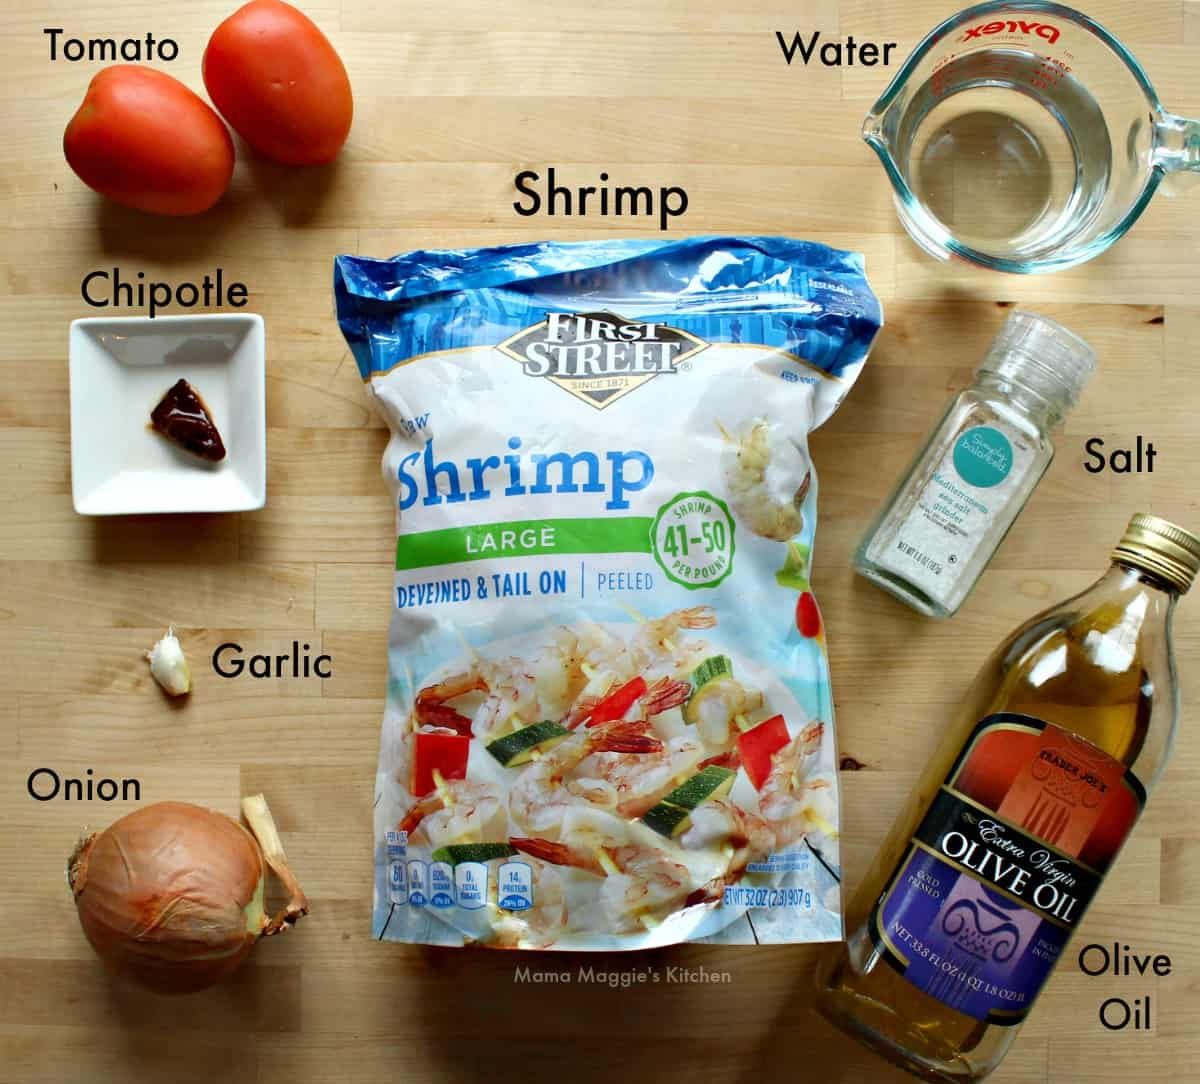 Ingredients for Camarones Enchipotlados on a wooden surface.